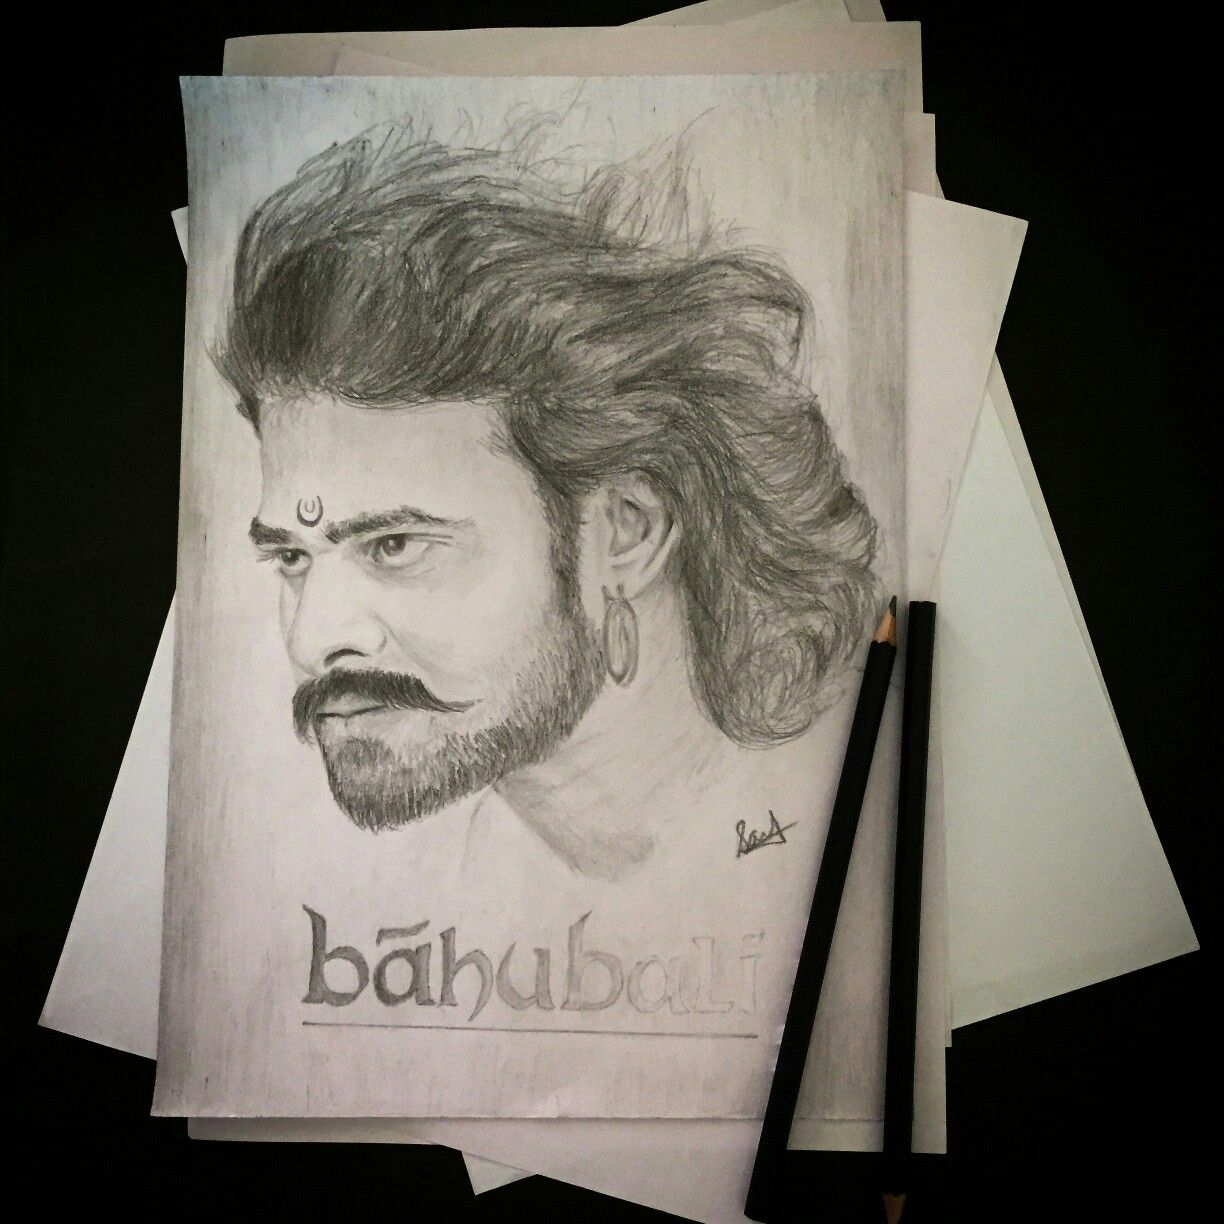 how to draw bahubali face